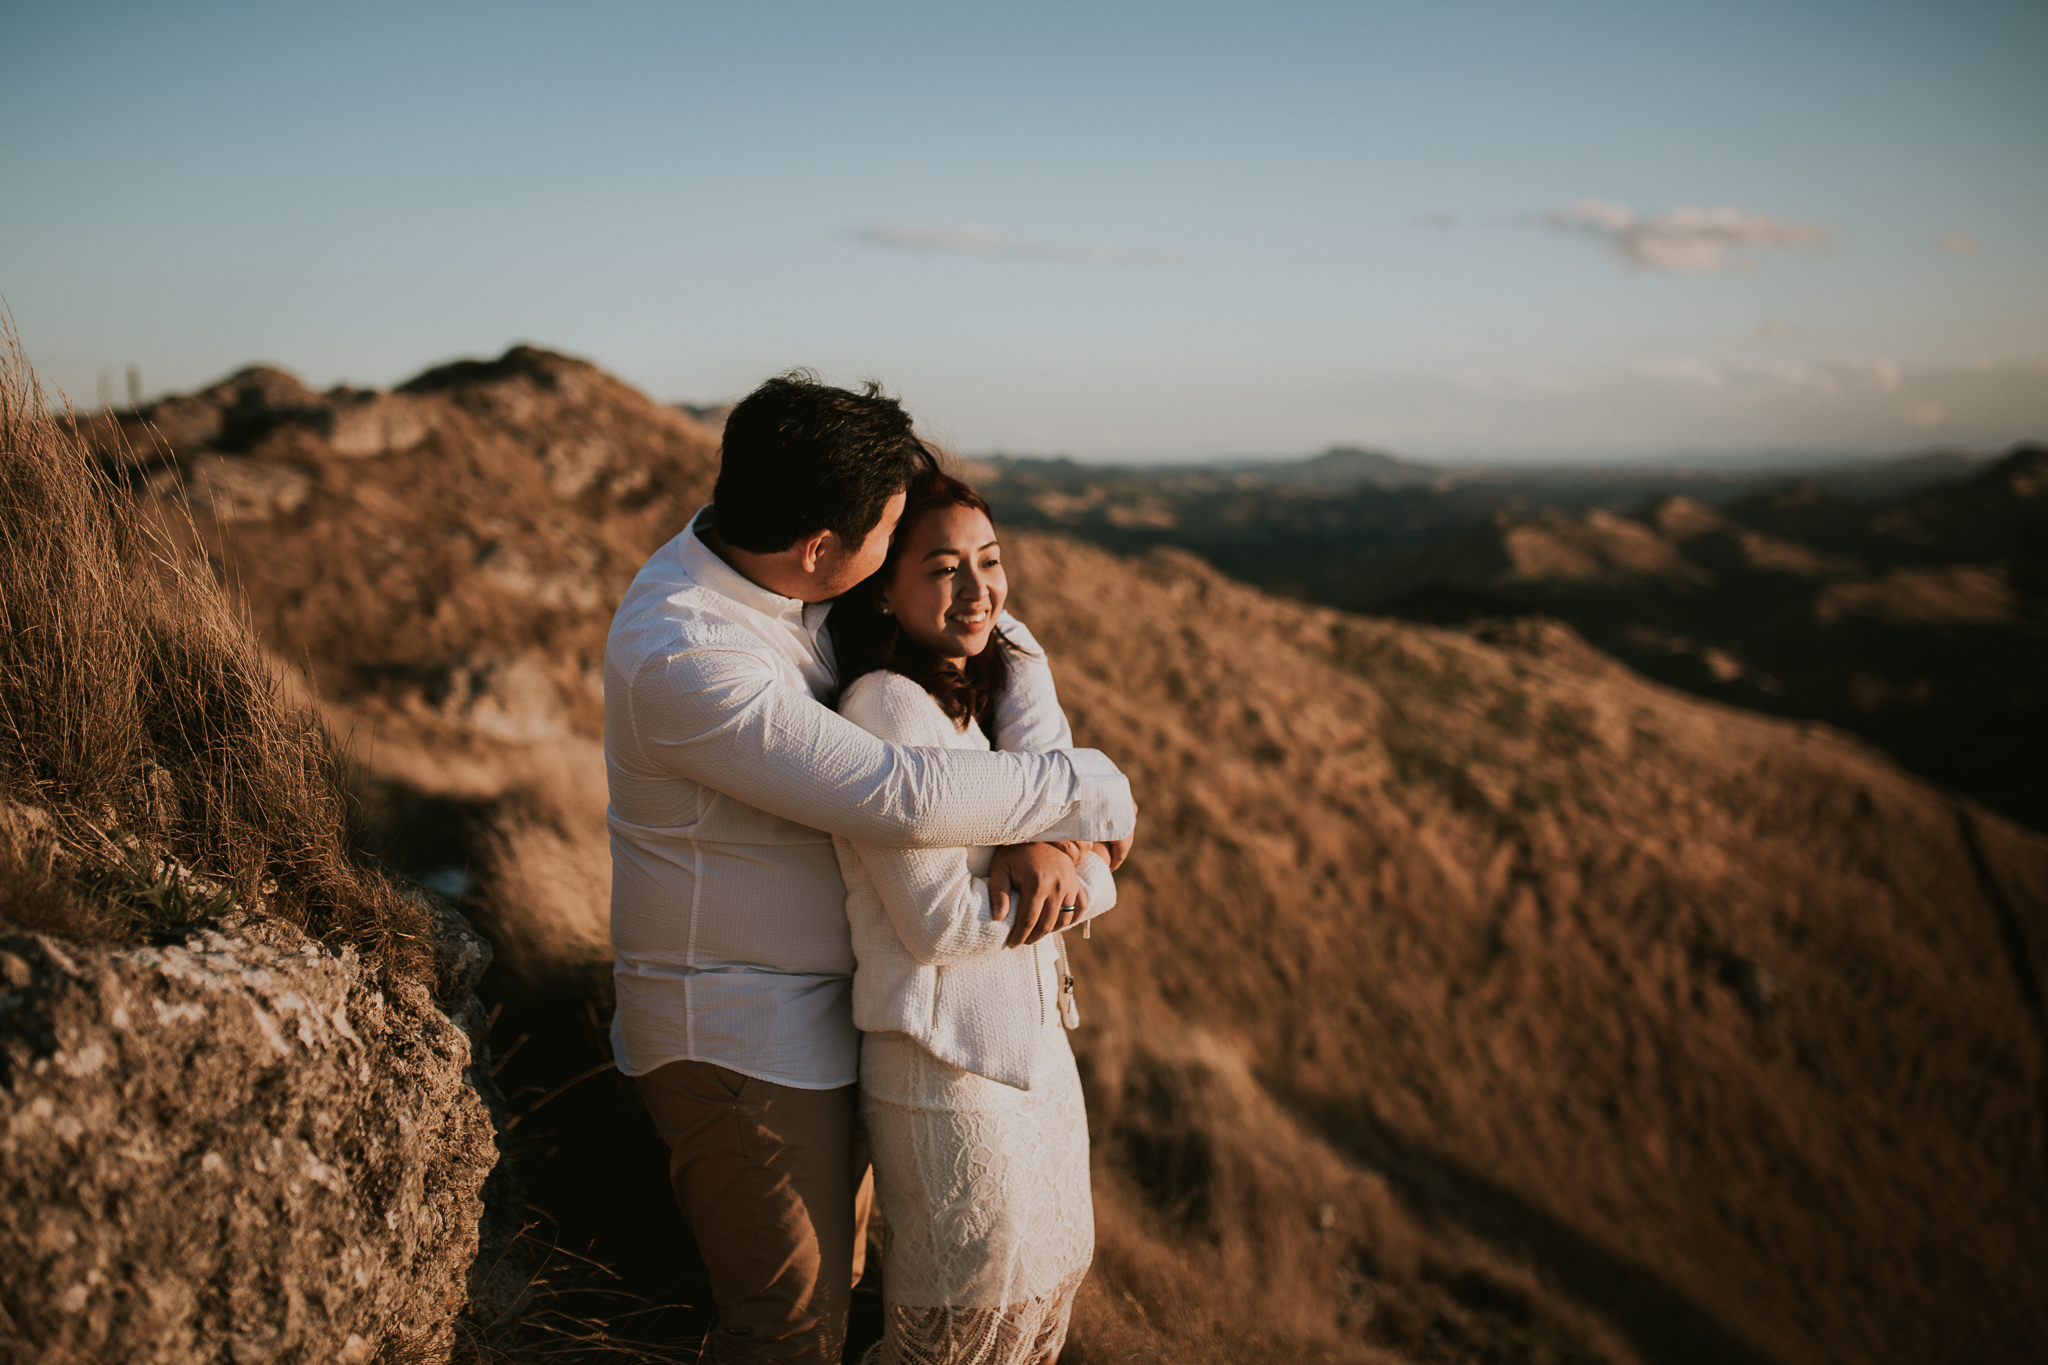 Wedding Photographers Hawkes Bay Te Mata Peak Engagement Shoot Sunset-12.jpg